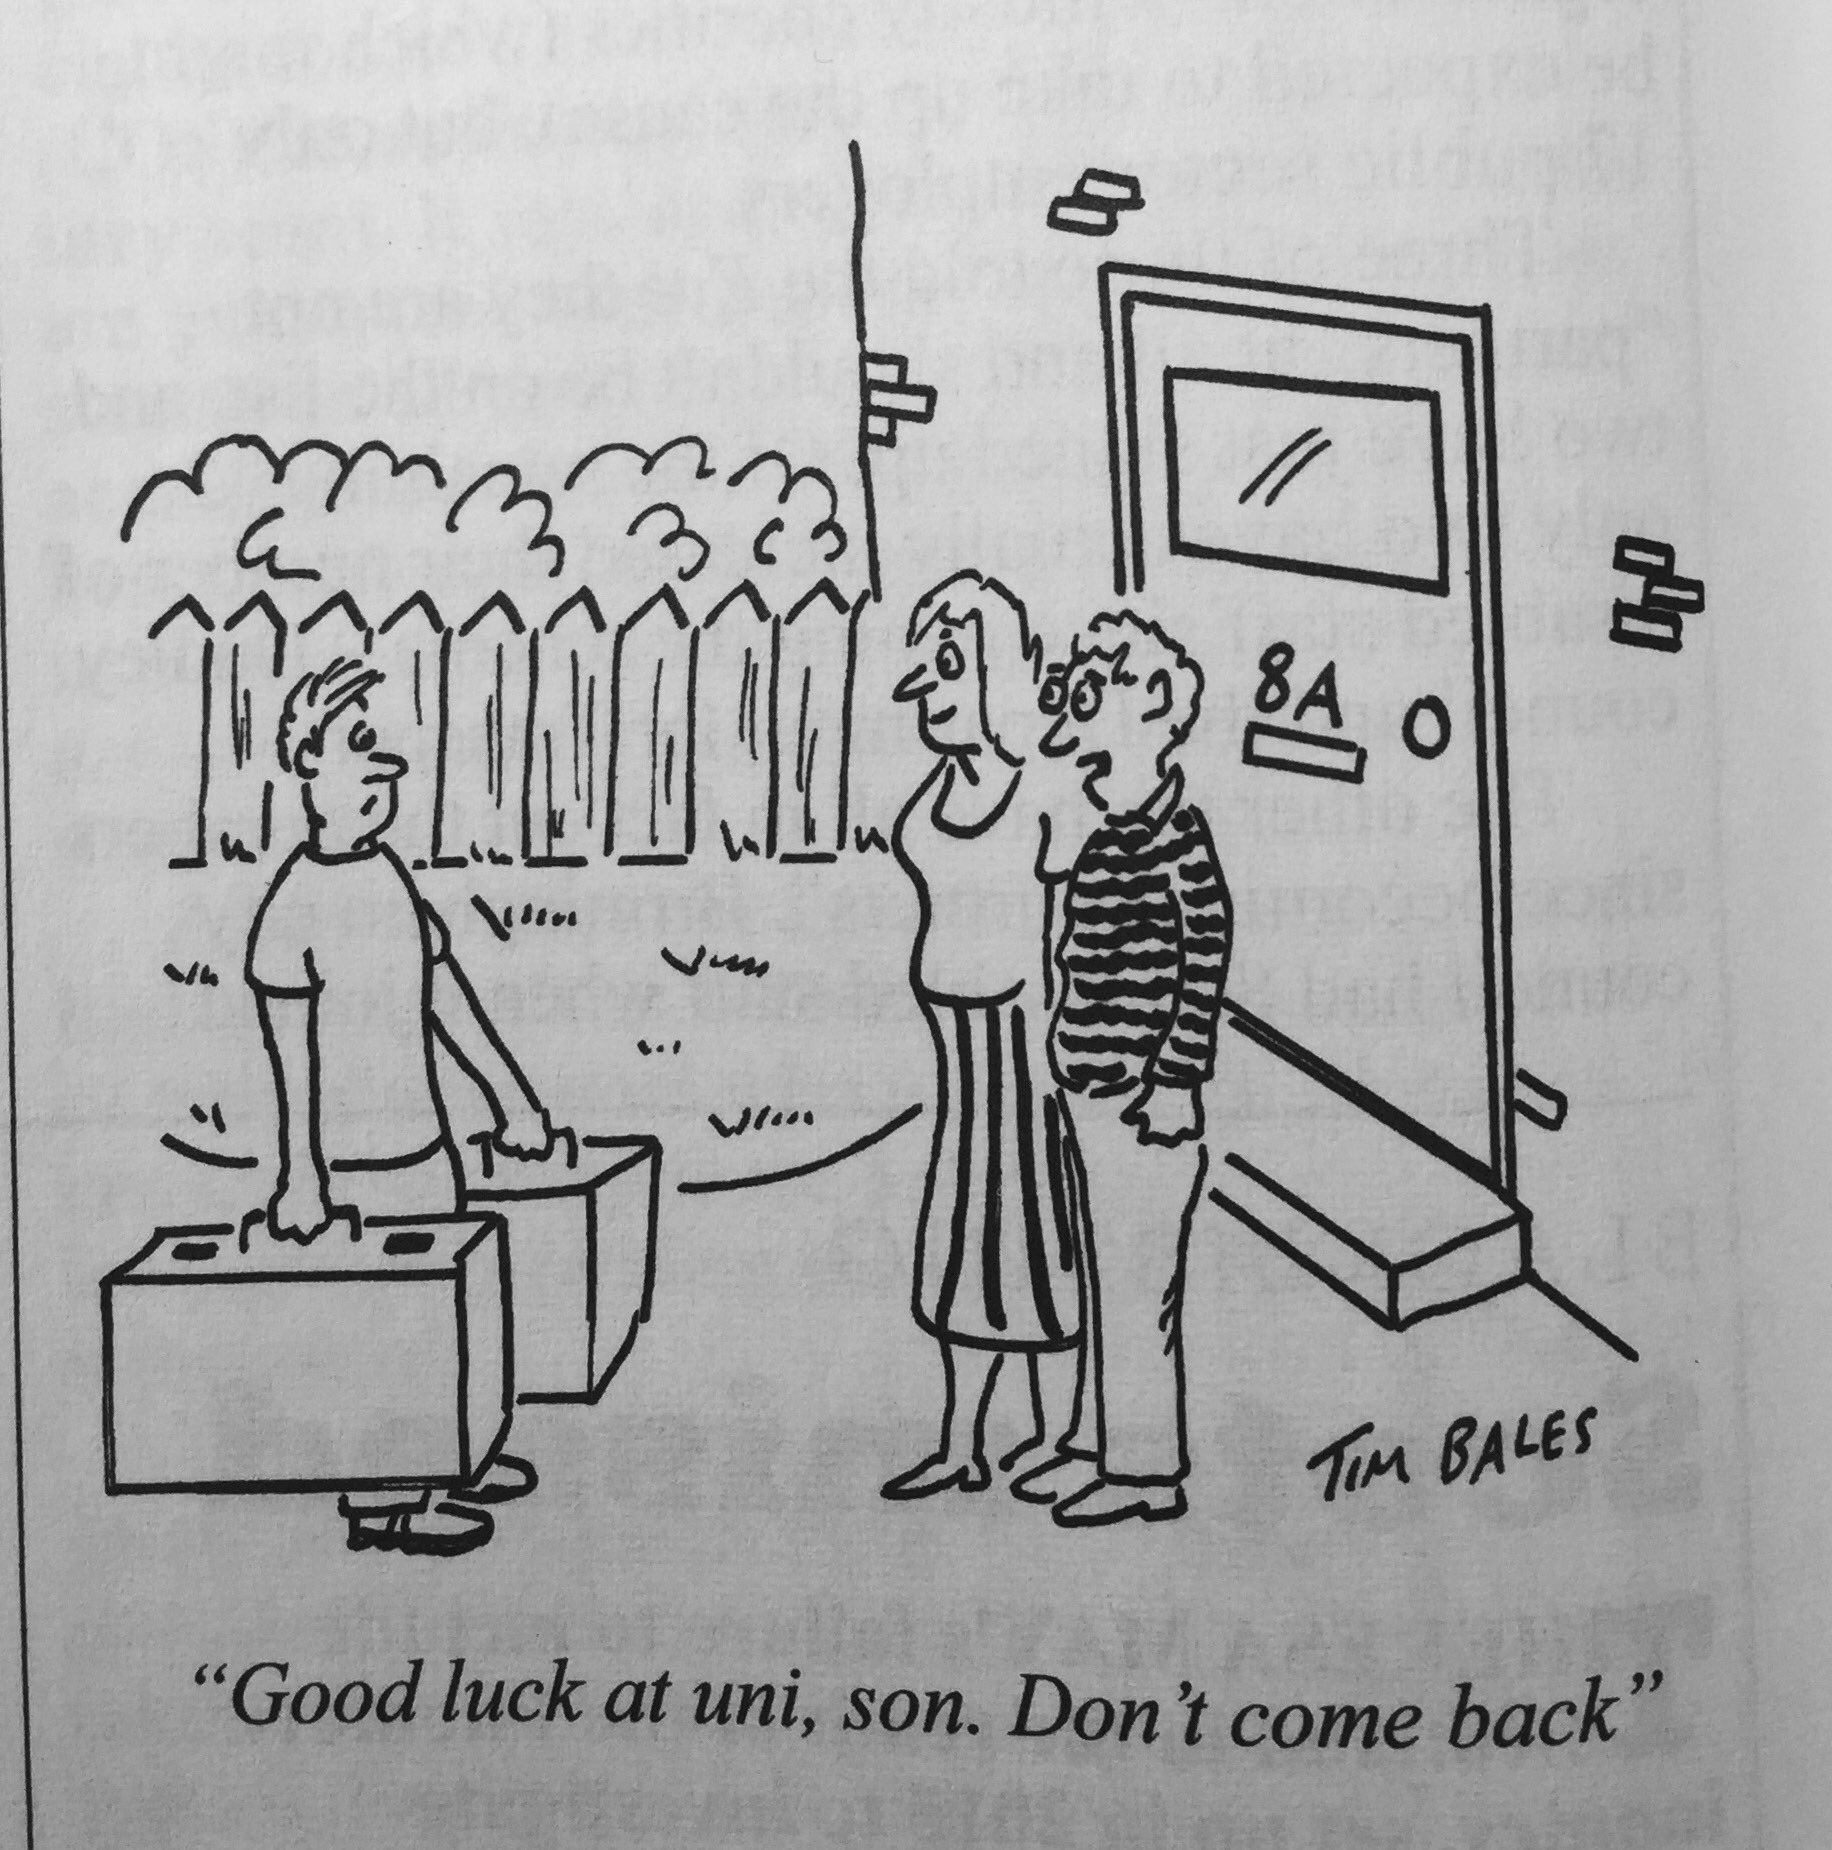 Always looking for @PrivateEyeNews to capture the spirit of going away to university. https://t.co/vgkxo5WncW